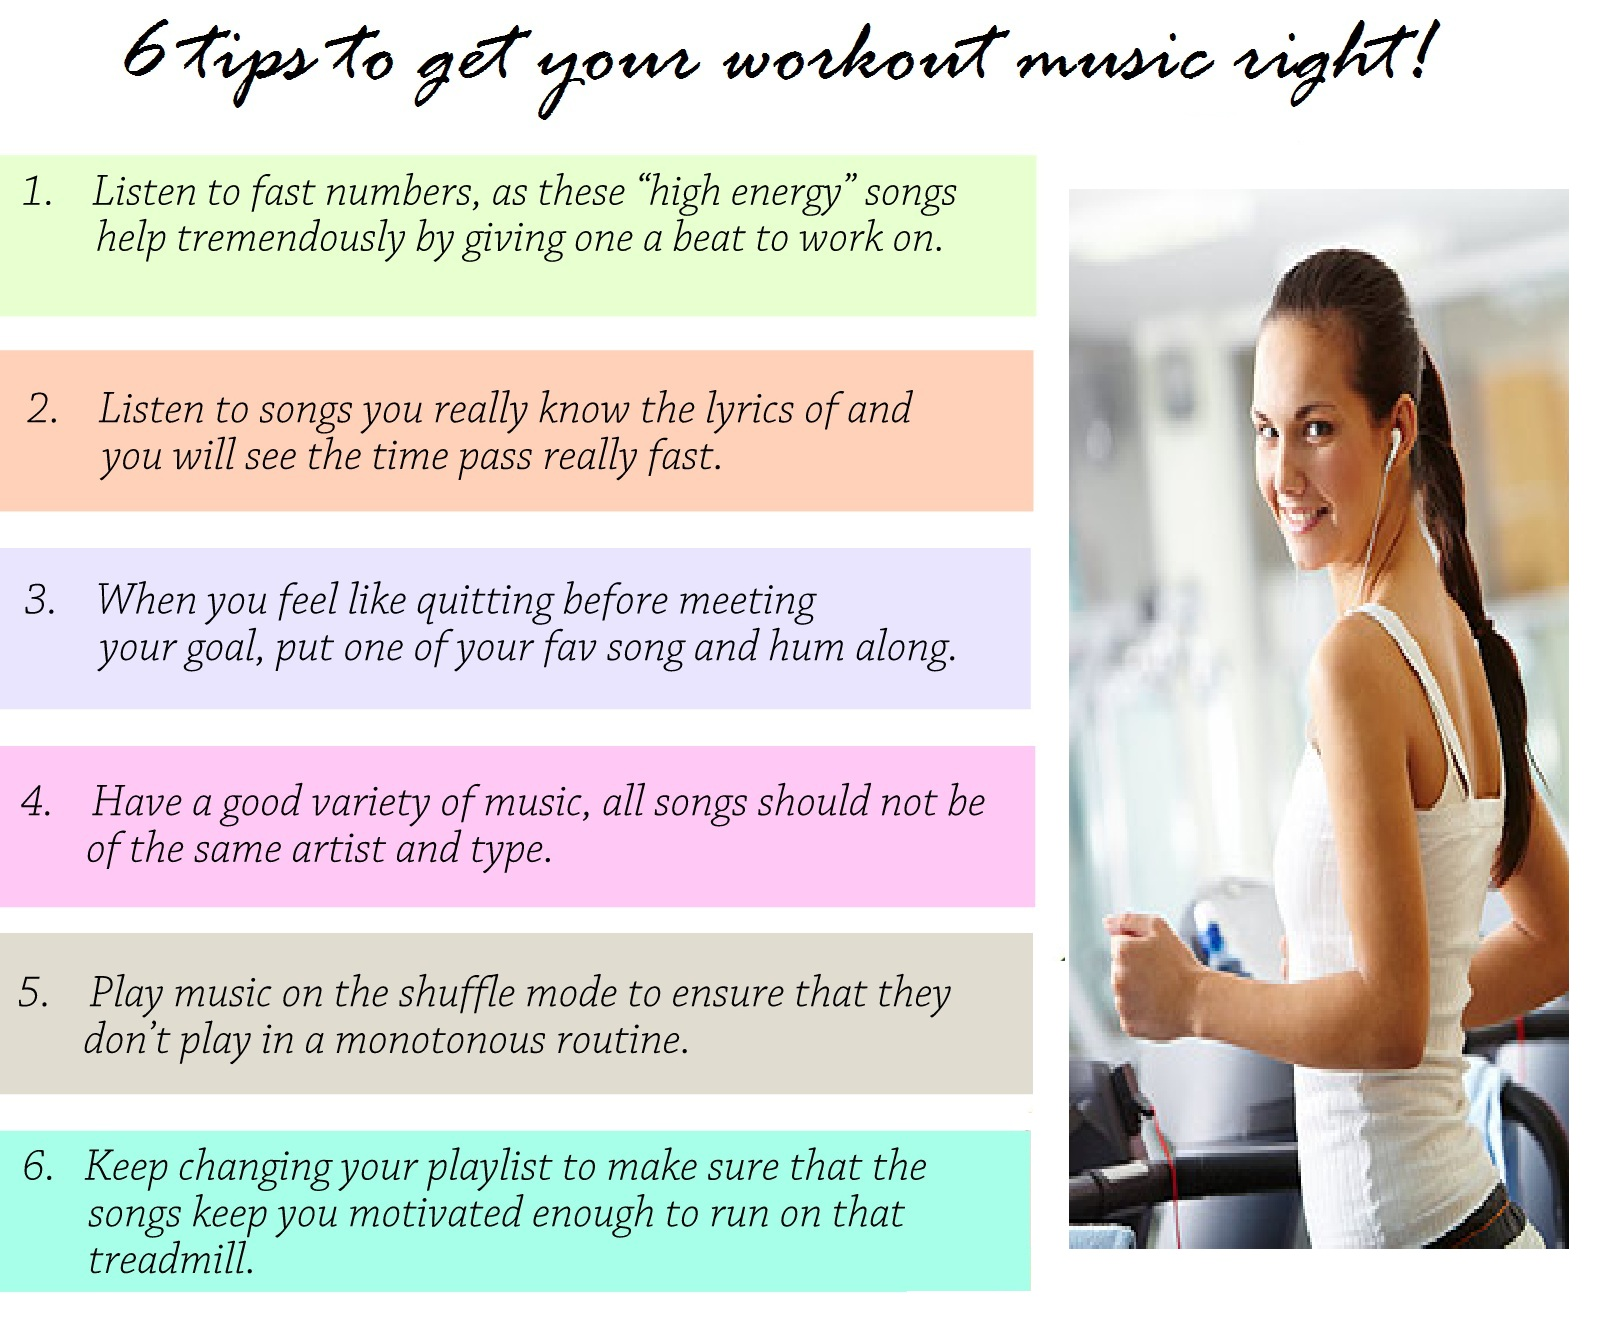 Tips to get your Workout Music Right!  Style Inked